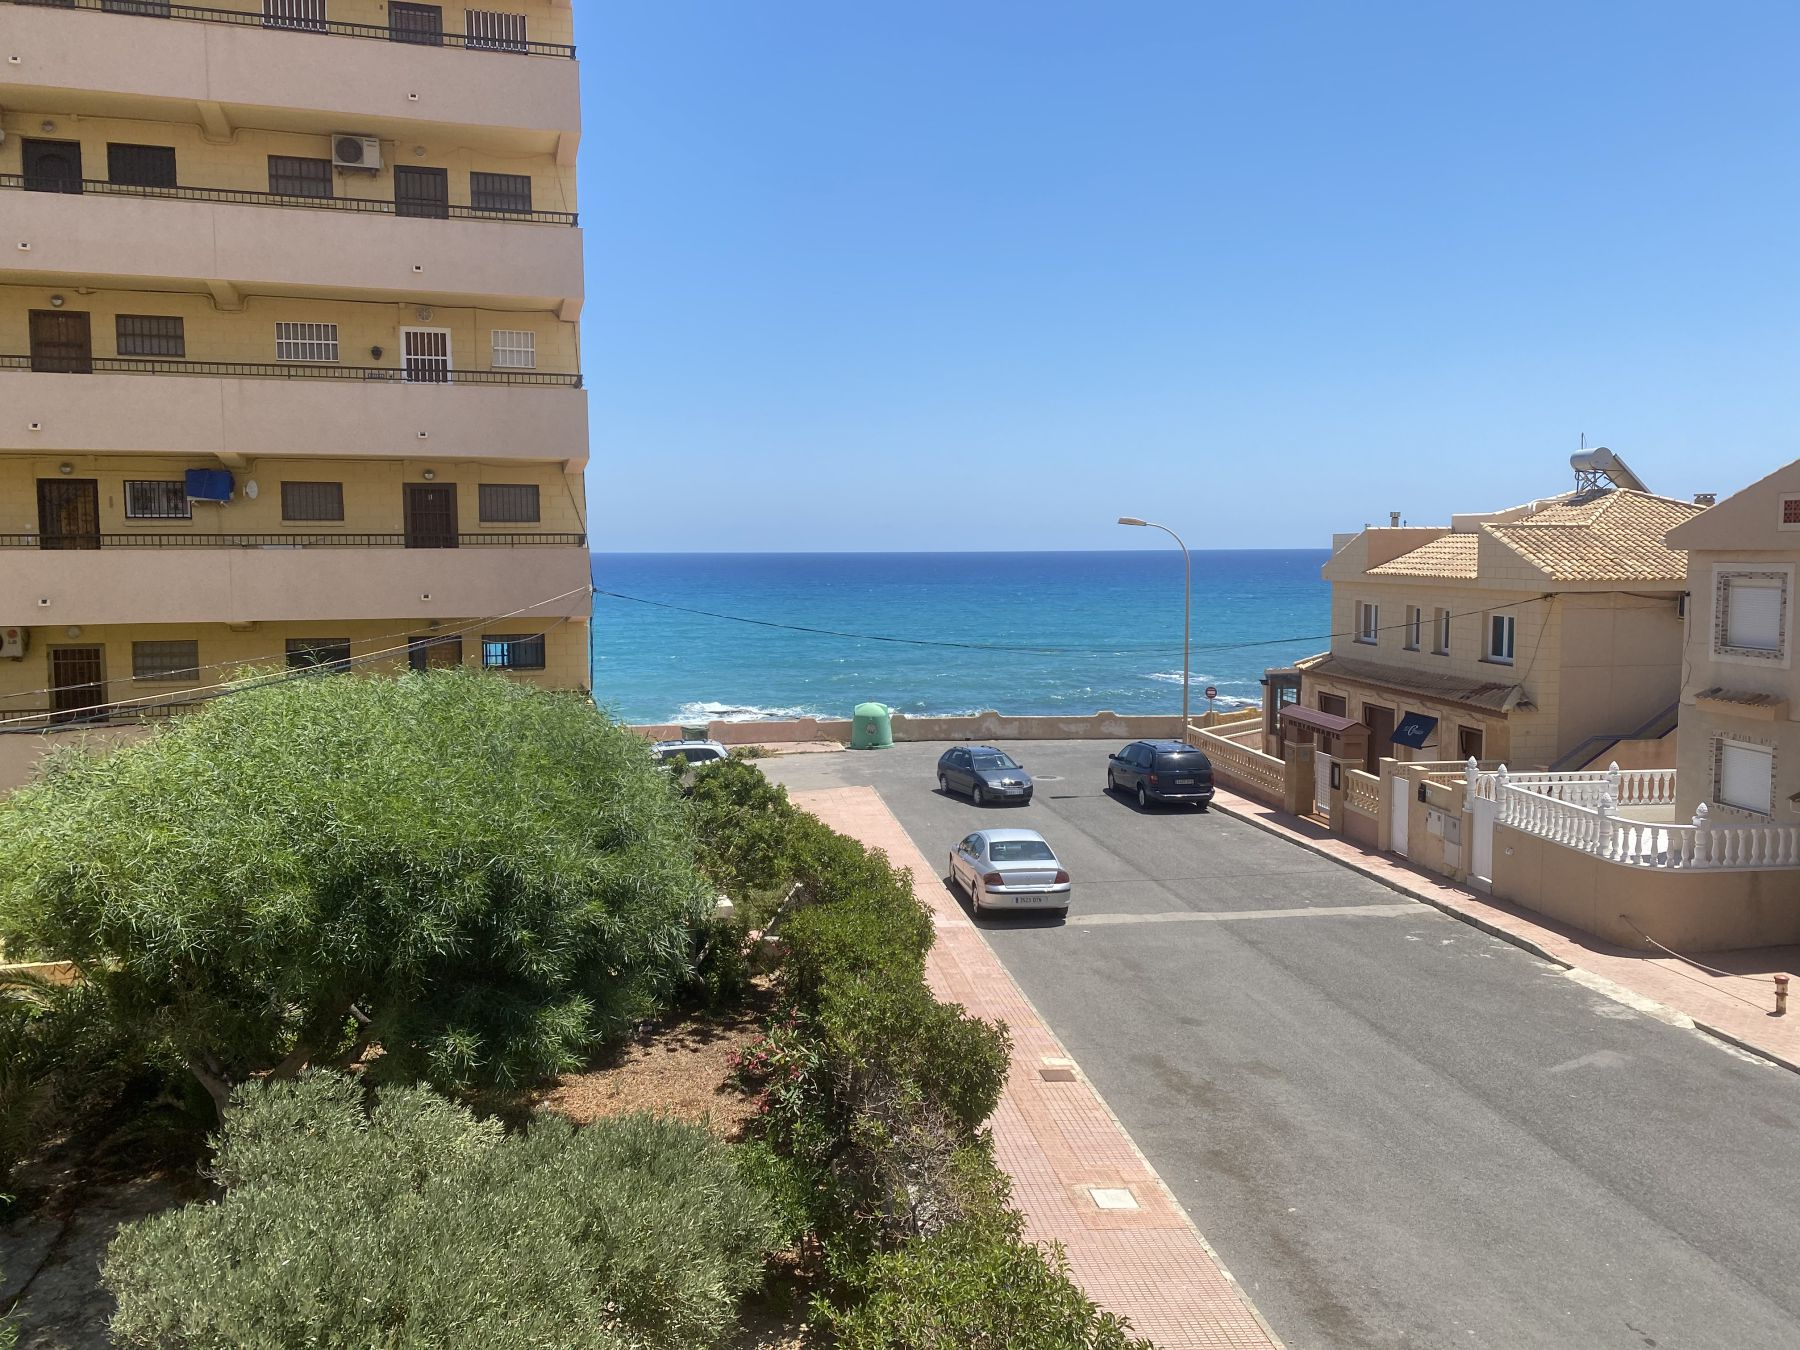 2 Bedrooms Apartment For Sale Just One Step From The Sea In Cabo Cervera